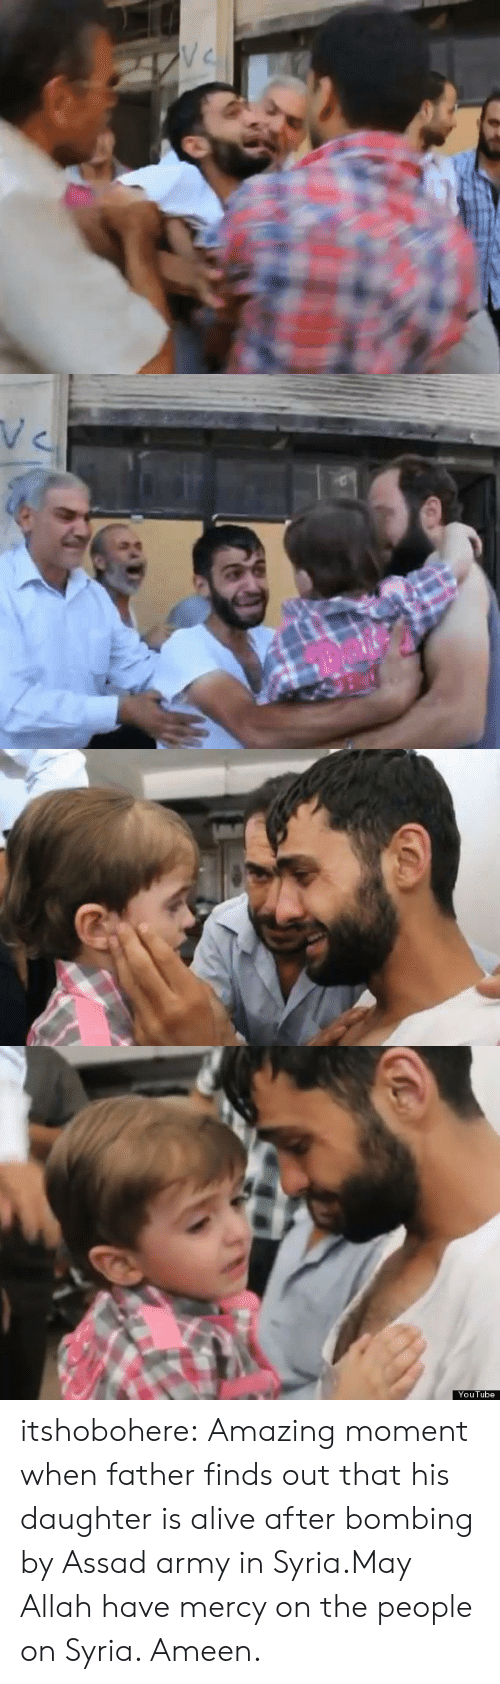 Have Mercy: V C   YouTube itshobohere:  Amazing moment when father finds out that his daughter is alive after bombing by Assad army in Syria.May Allah have mercy on the people on Syria. Ameen.